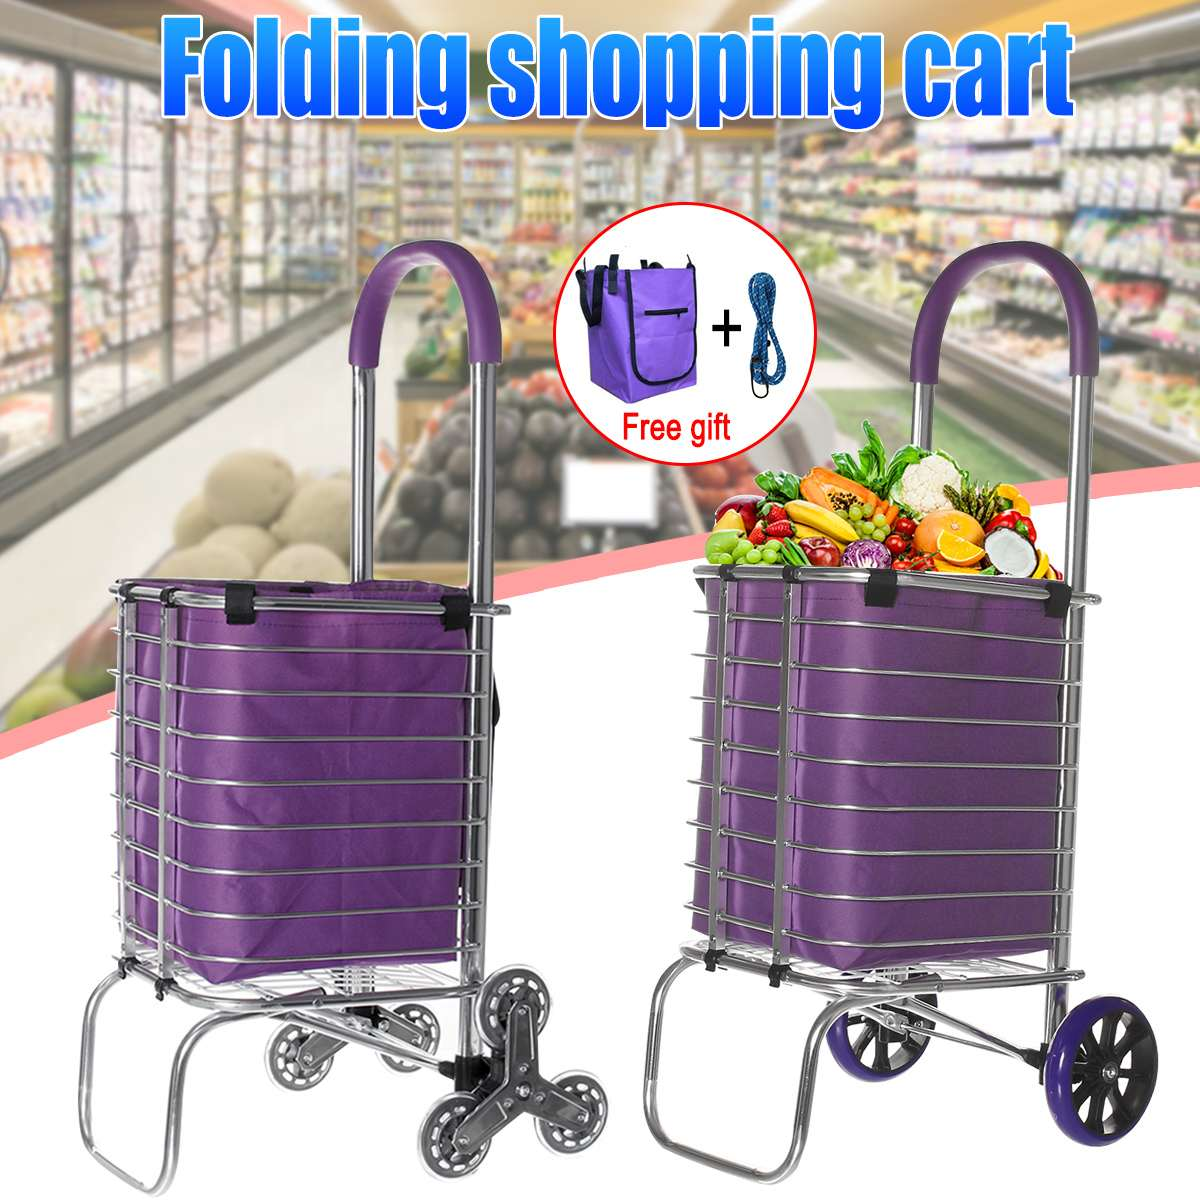 6 Wheel Stair Ladder Shopping Cart Shopping Basket Household Shopping Trolley Trailer Portable Cart Shopping Bag Large